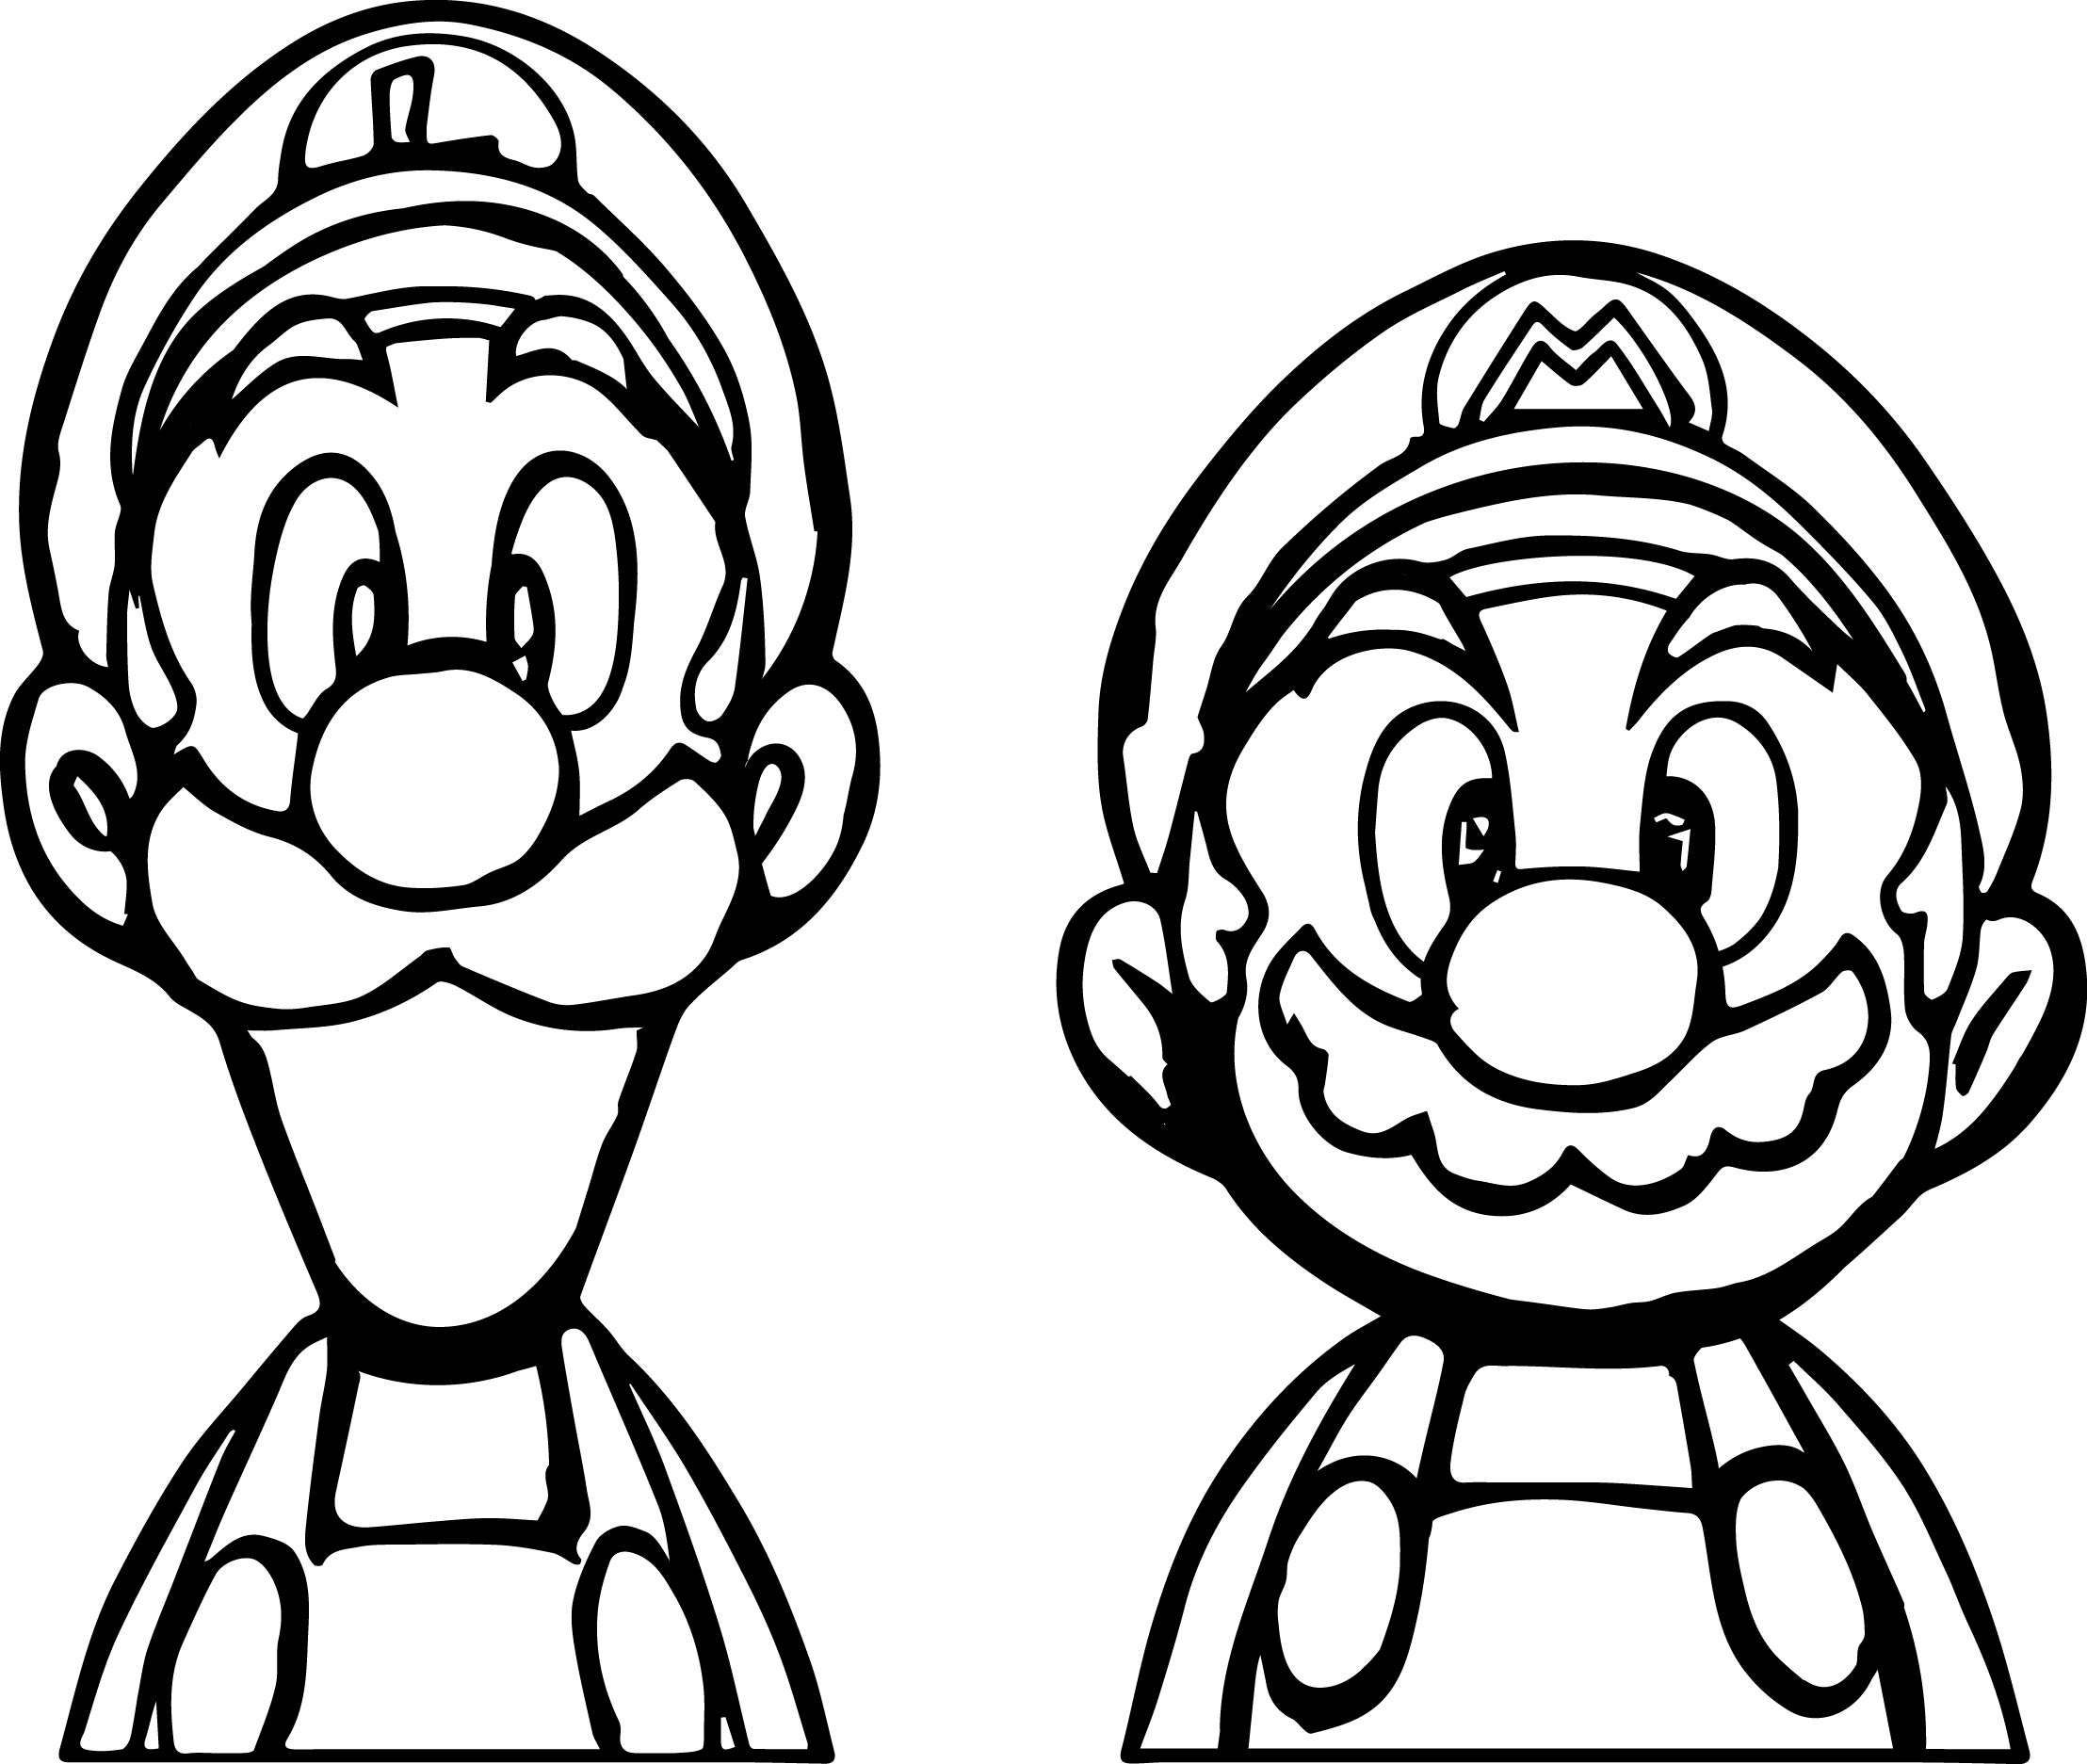 Super Mario Coloring Page Luxury Photos Mario Luigi Coloring Pages Here Is The Happy Meal Super Super Mario Coloring Pages Mario Coloring Pages Coloring Pages